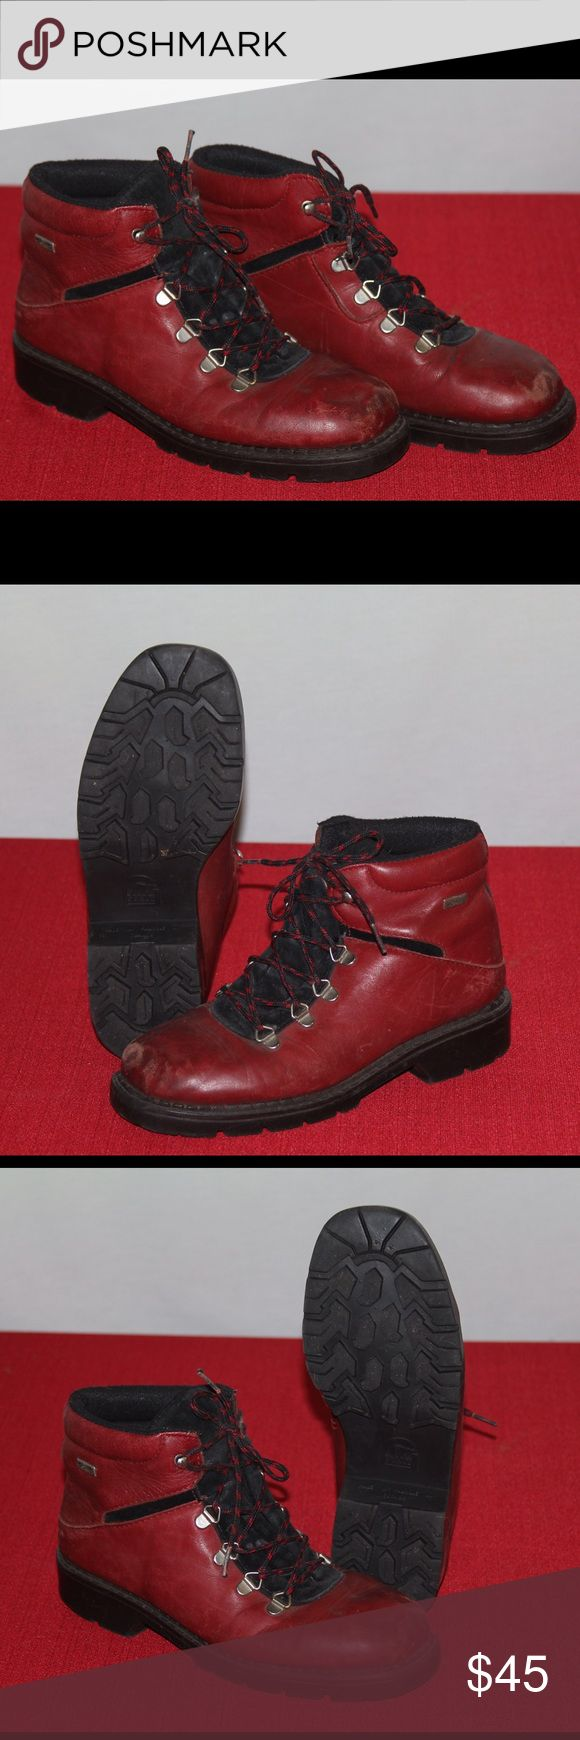 Sorel Winter mid top Boot 7.5 women's Red My old boots, used for a few winters still have plenty of life left in them Sorel Shoes Winter & Rain Boots